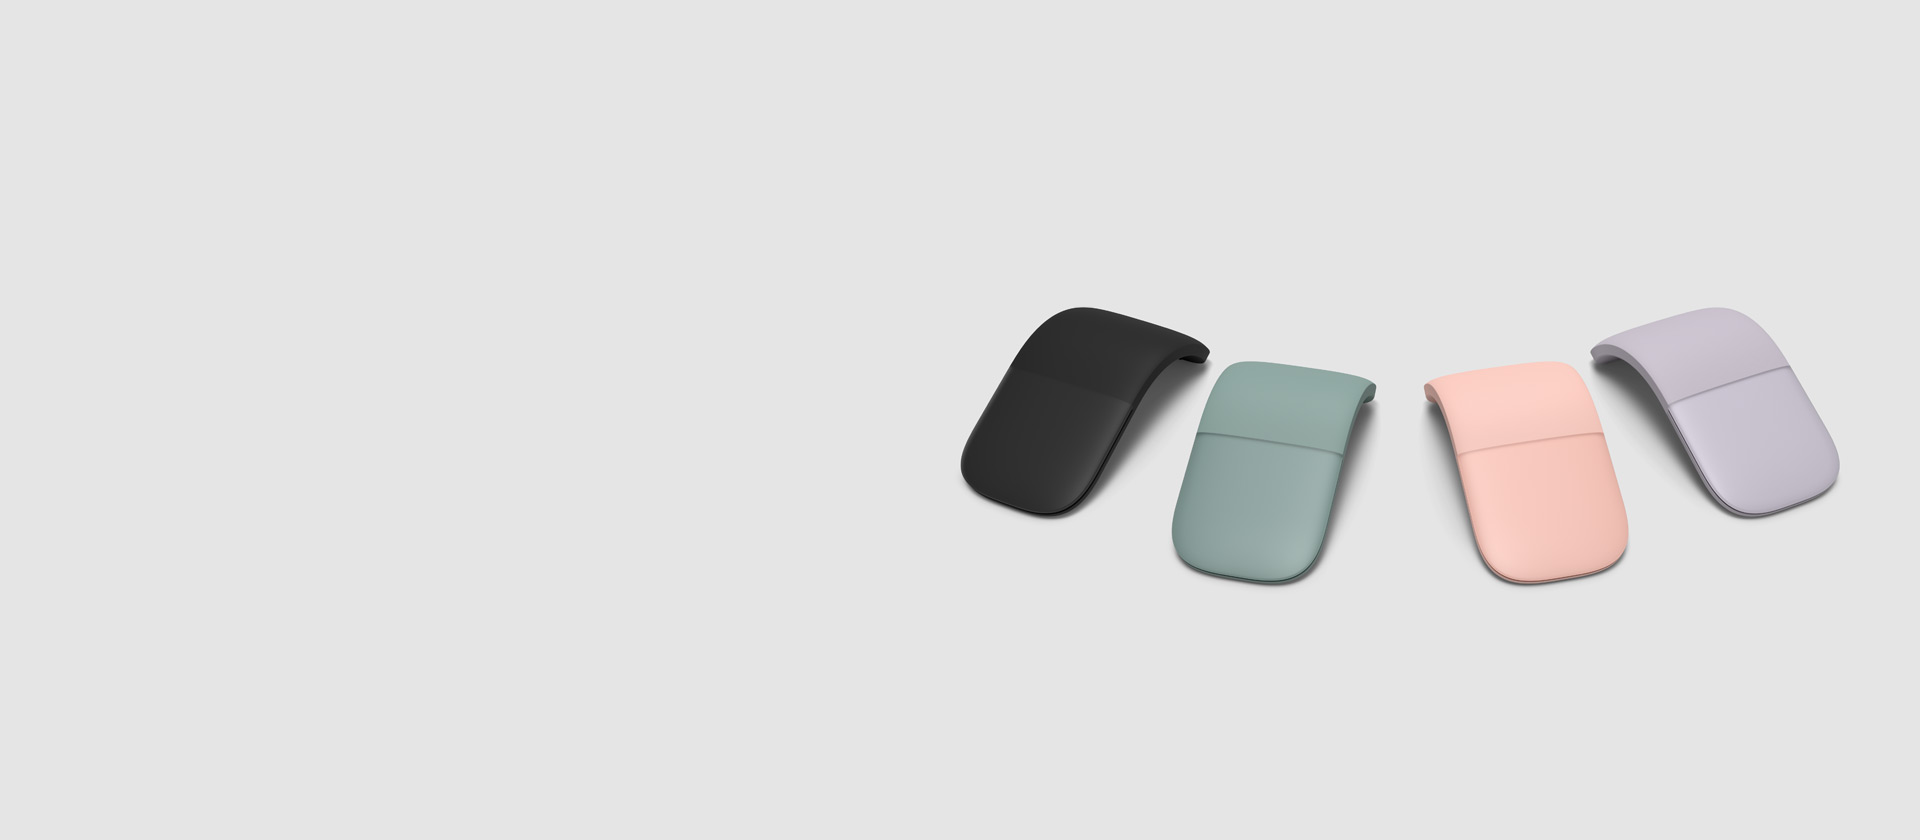 Microsoft Arc Mouse in multiple colors